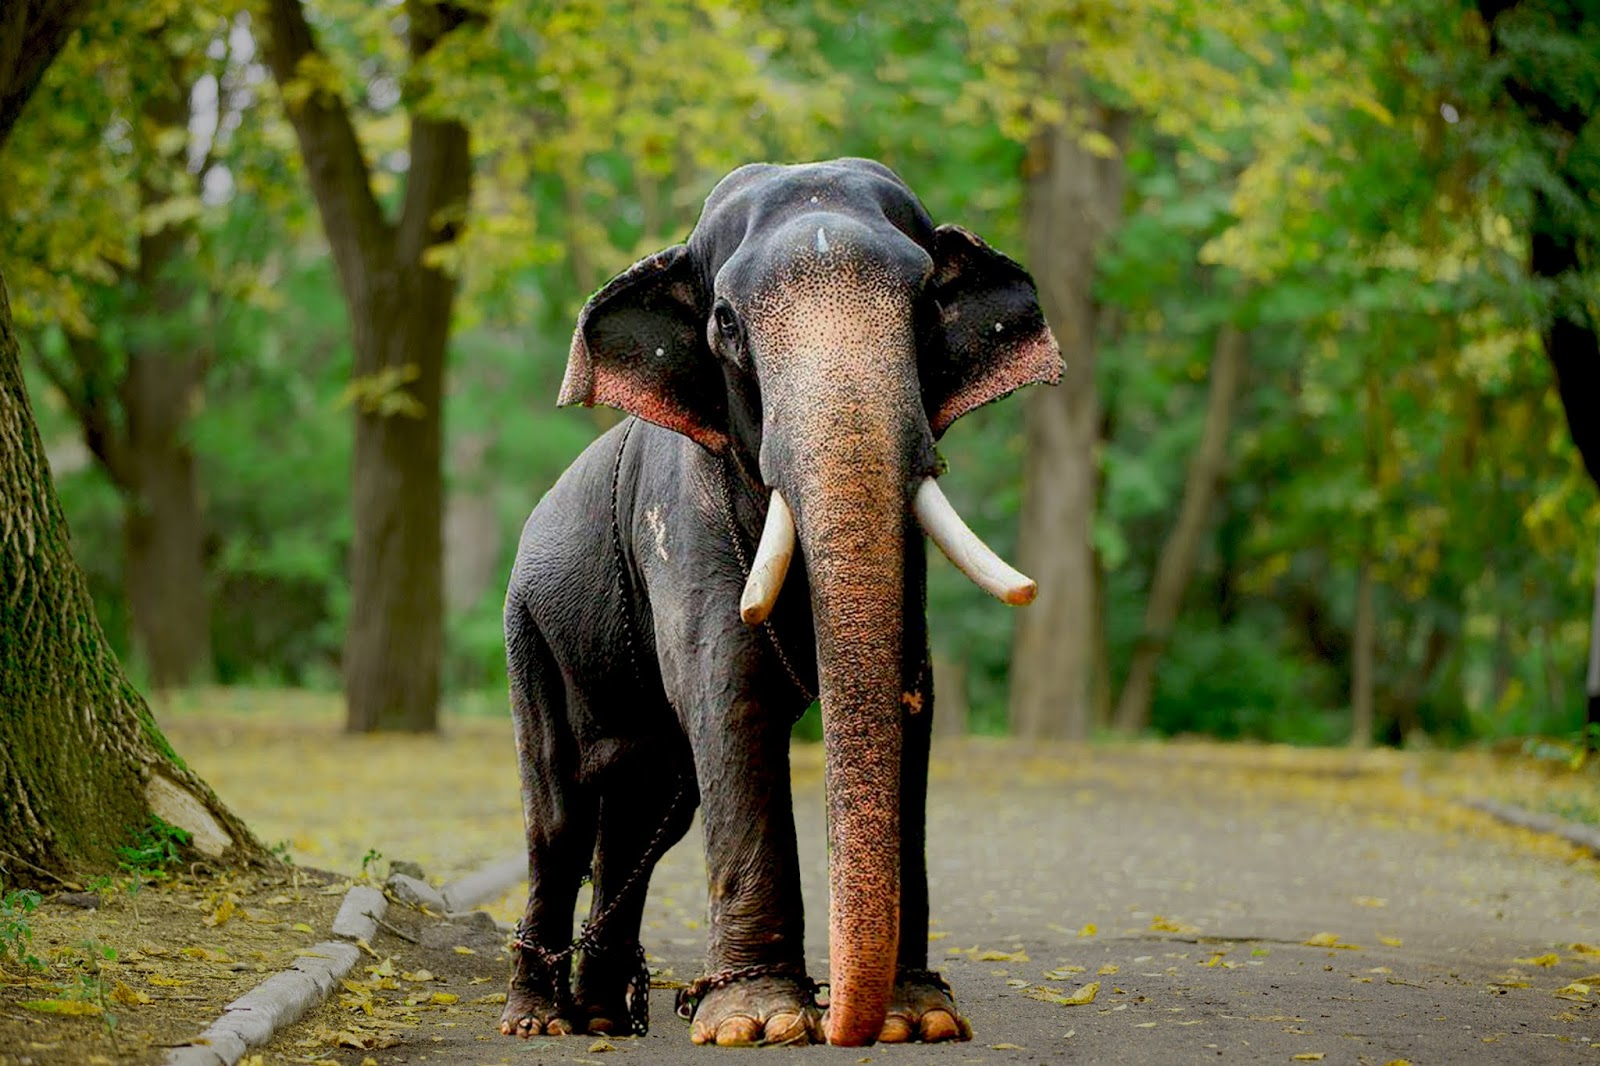 Kerala Elephants Images | Kerala elephants wallpapers HD ...